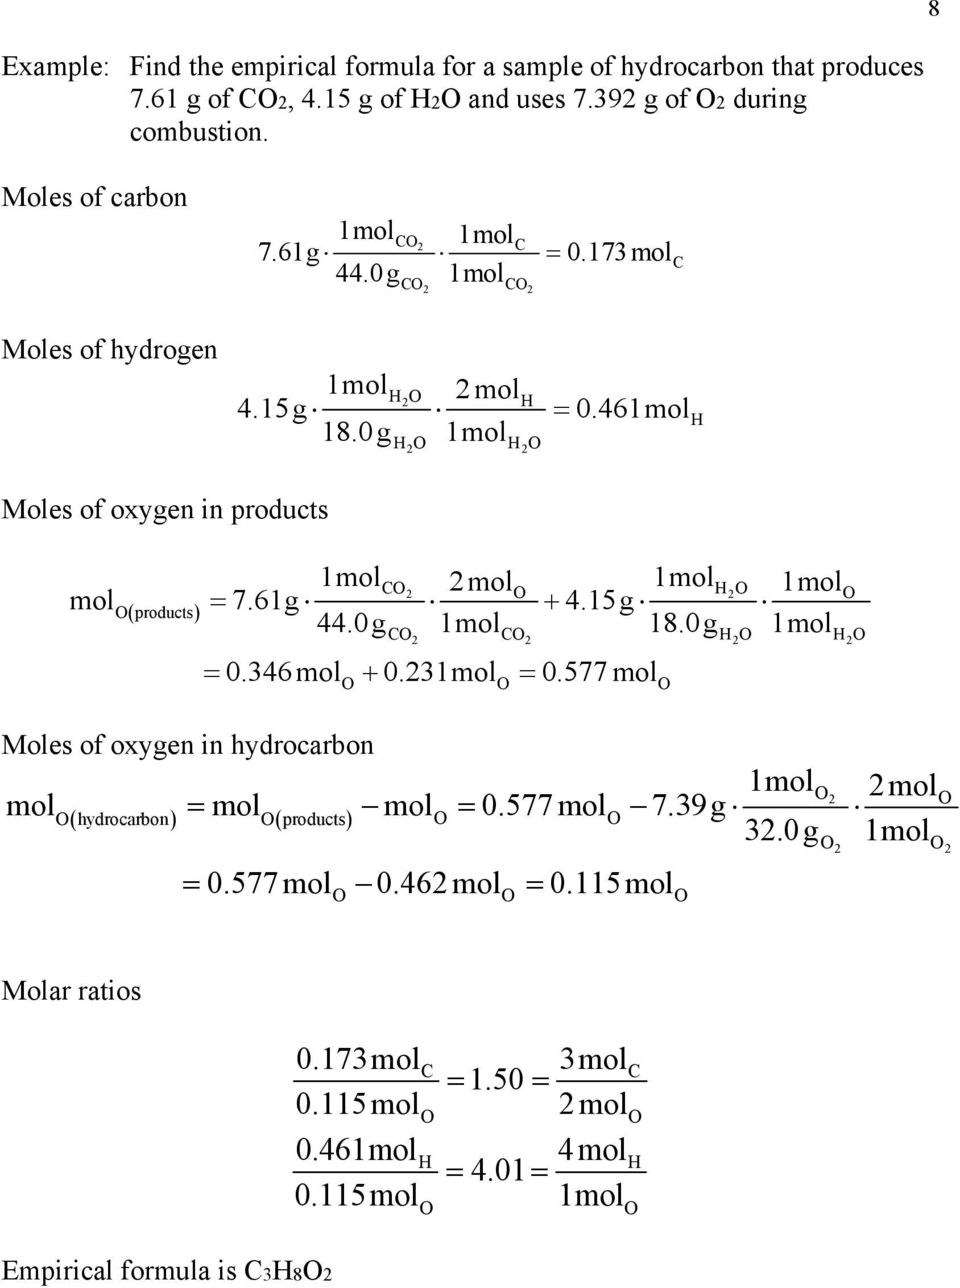 46 H H H Moles of oxygen in products C mol H mol products 7.61g 4.15g 44.0g 18.0g Moles of oxygen in hydrocarbon C C H H 0.346 mol 0.3 0.